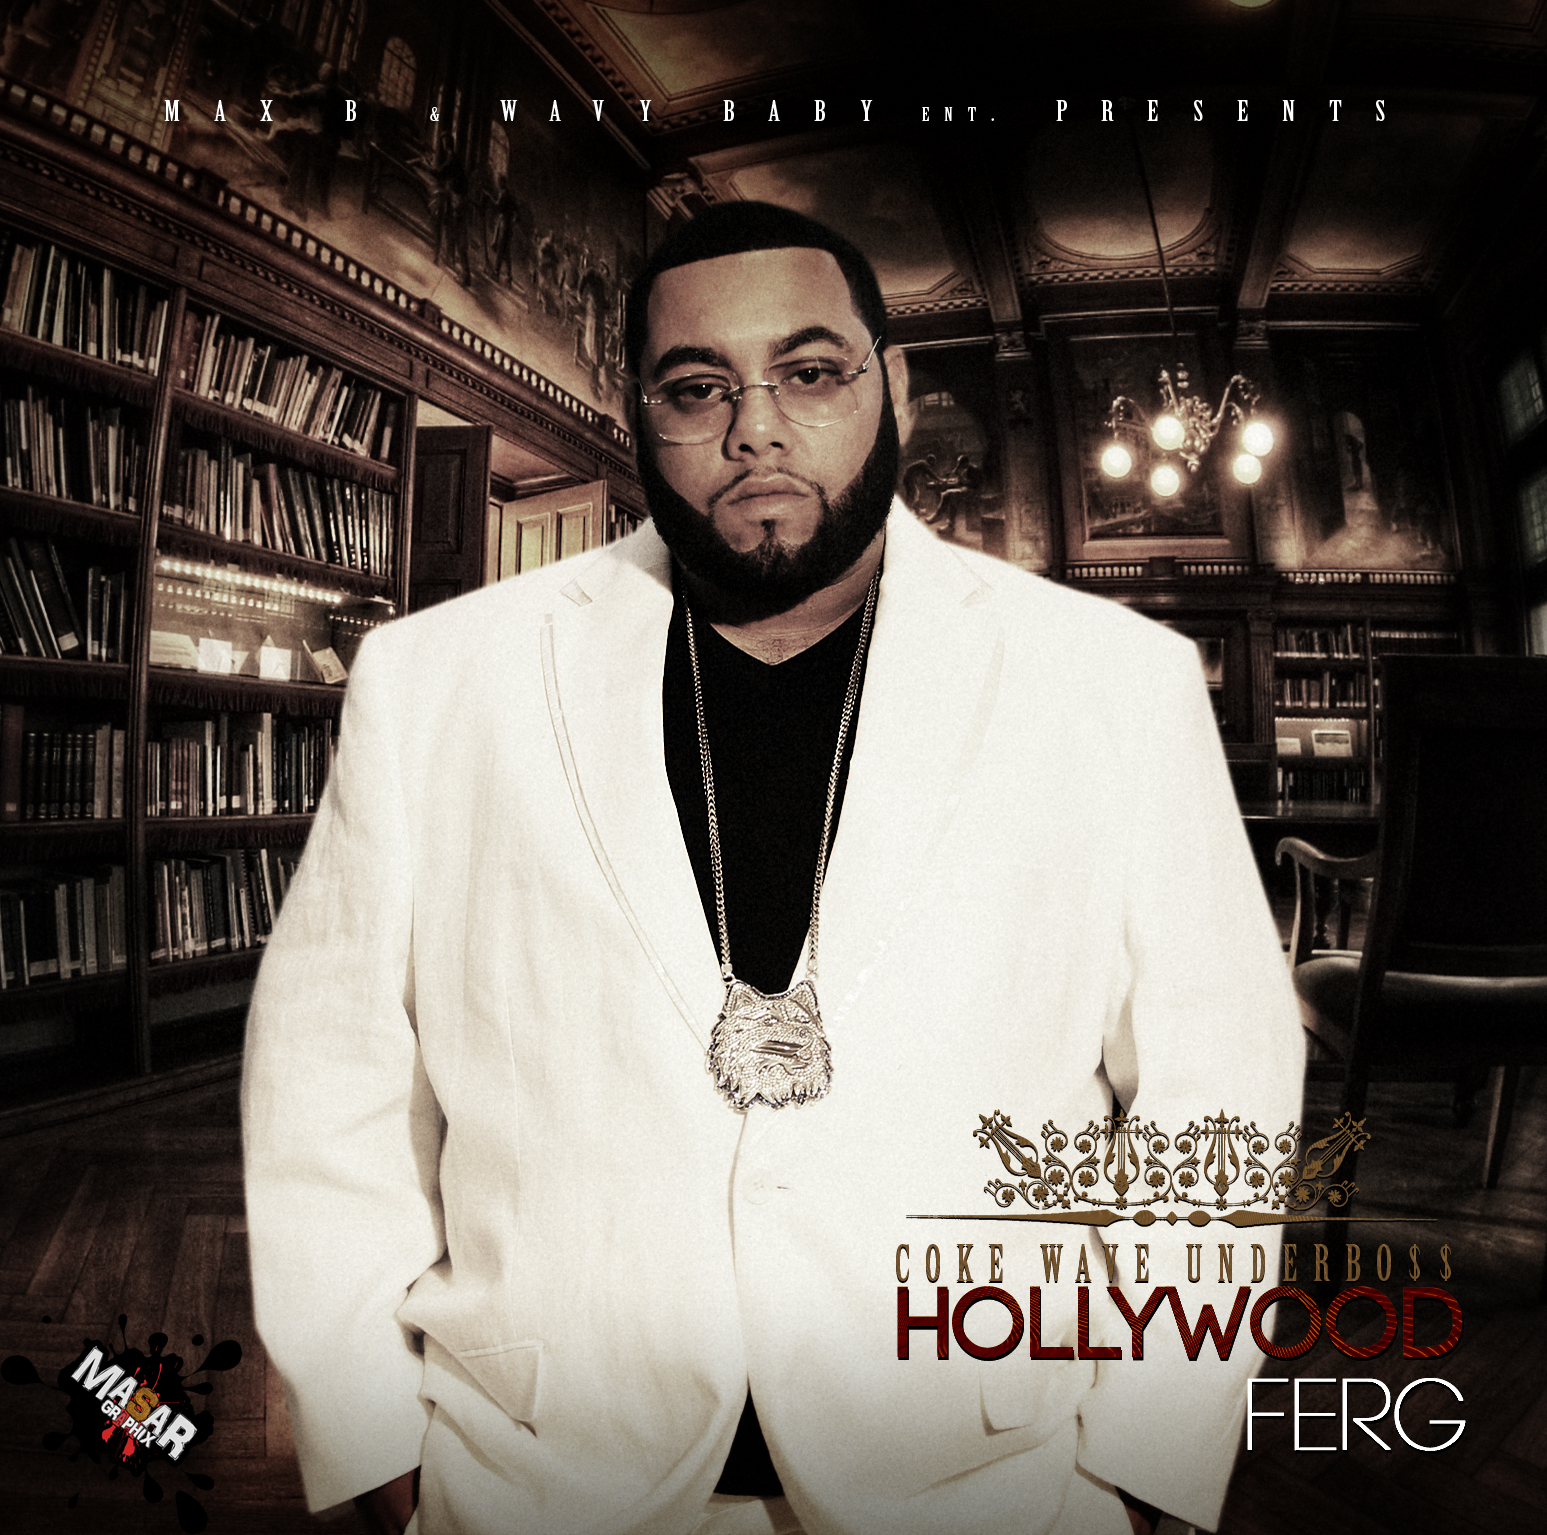 "Hollywood Ferg ""CokeWave UnderBo$$"" 